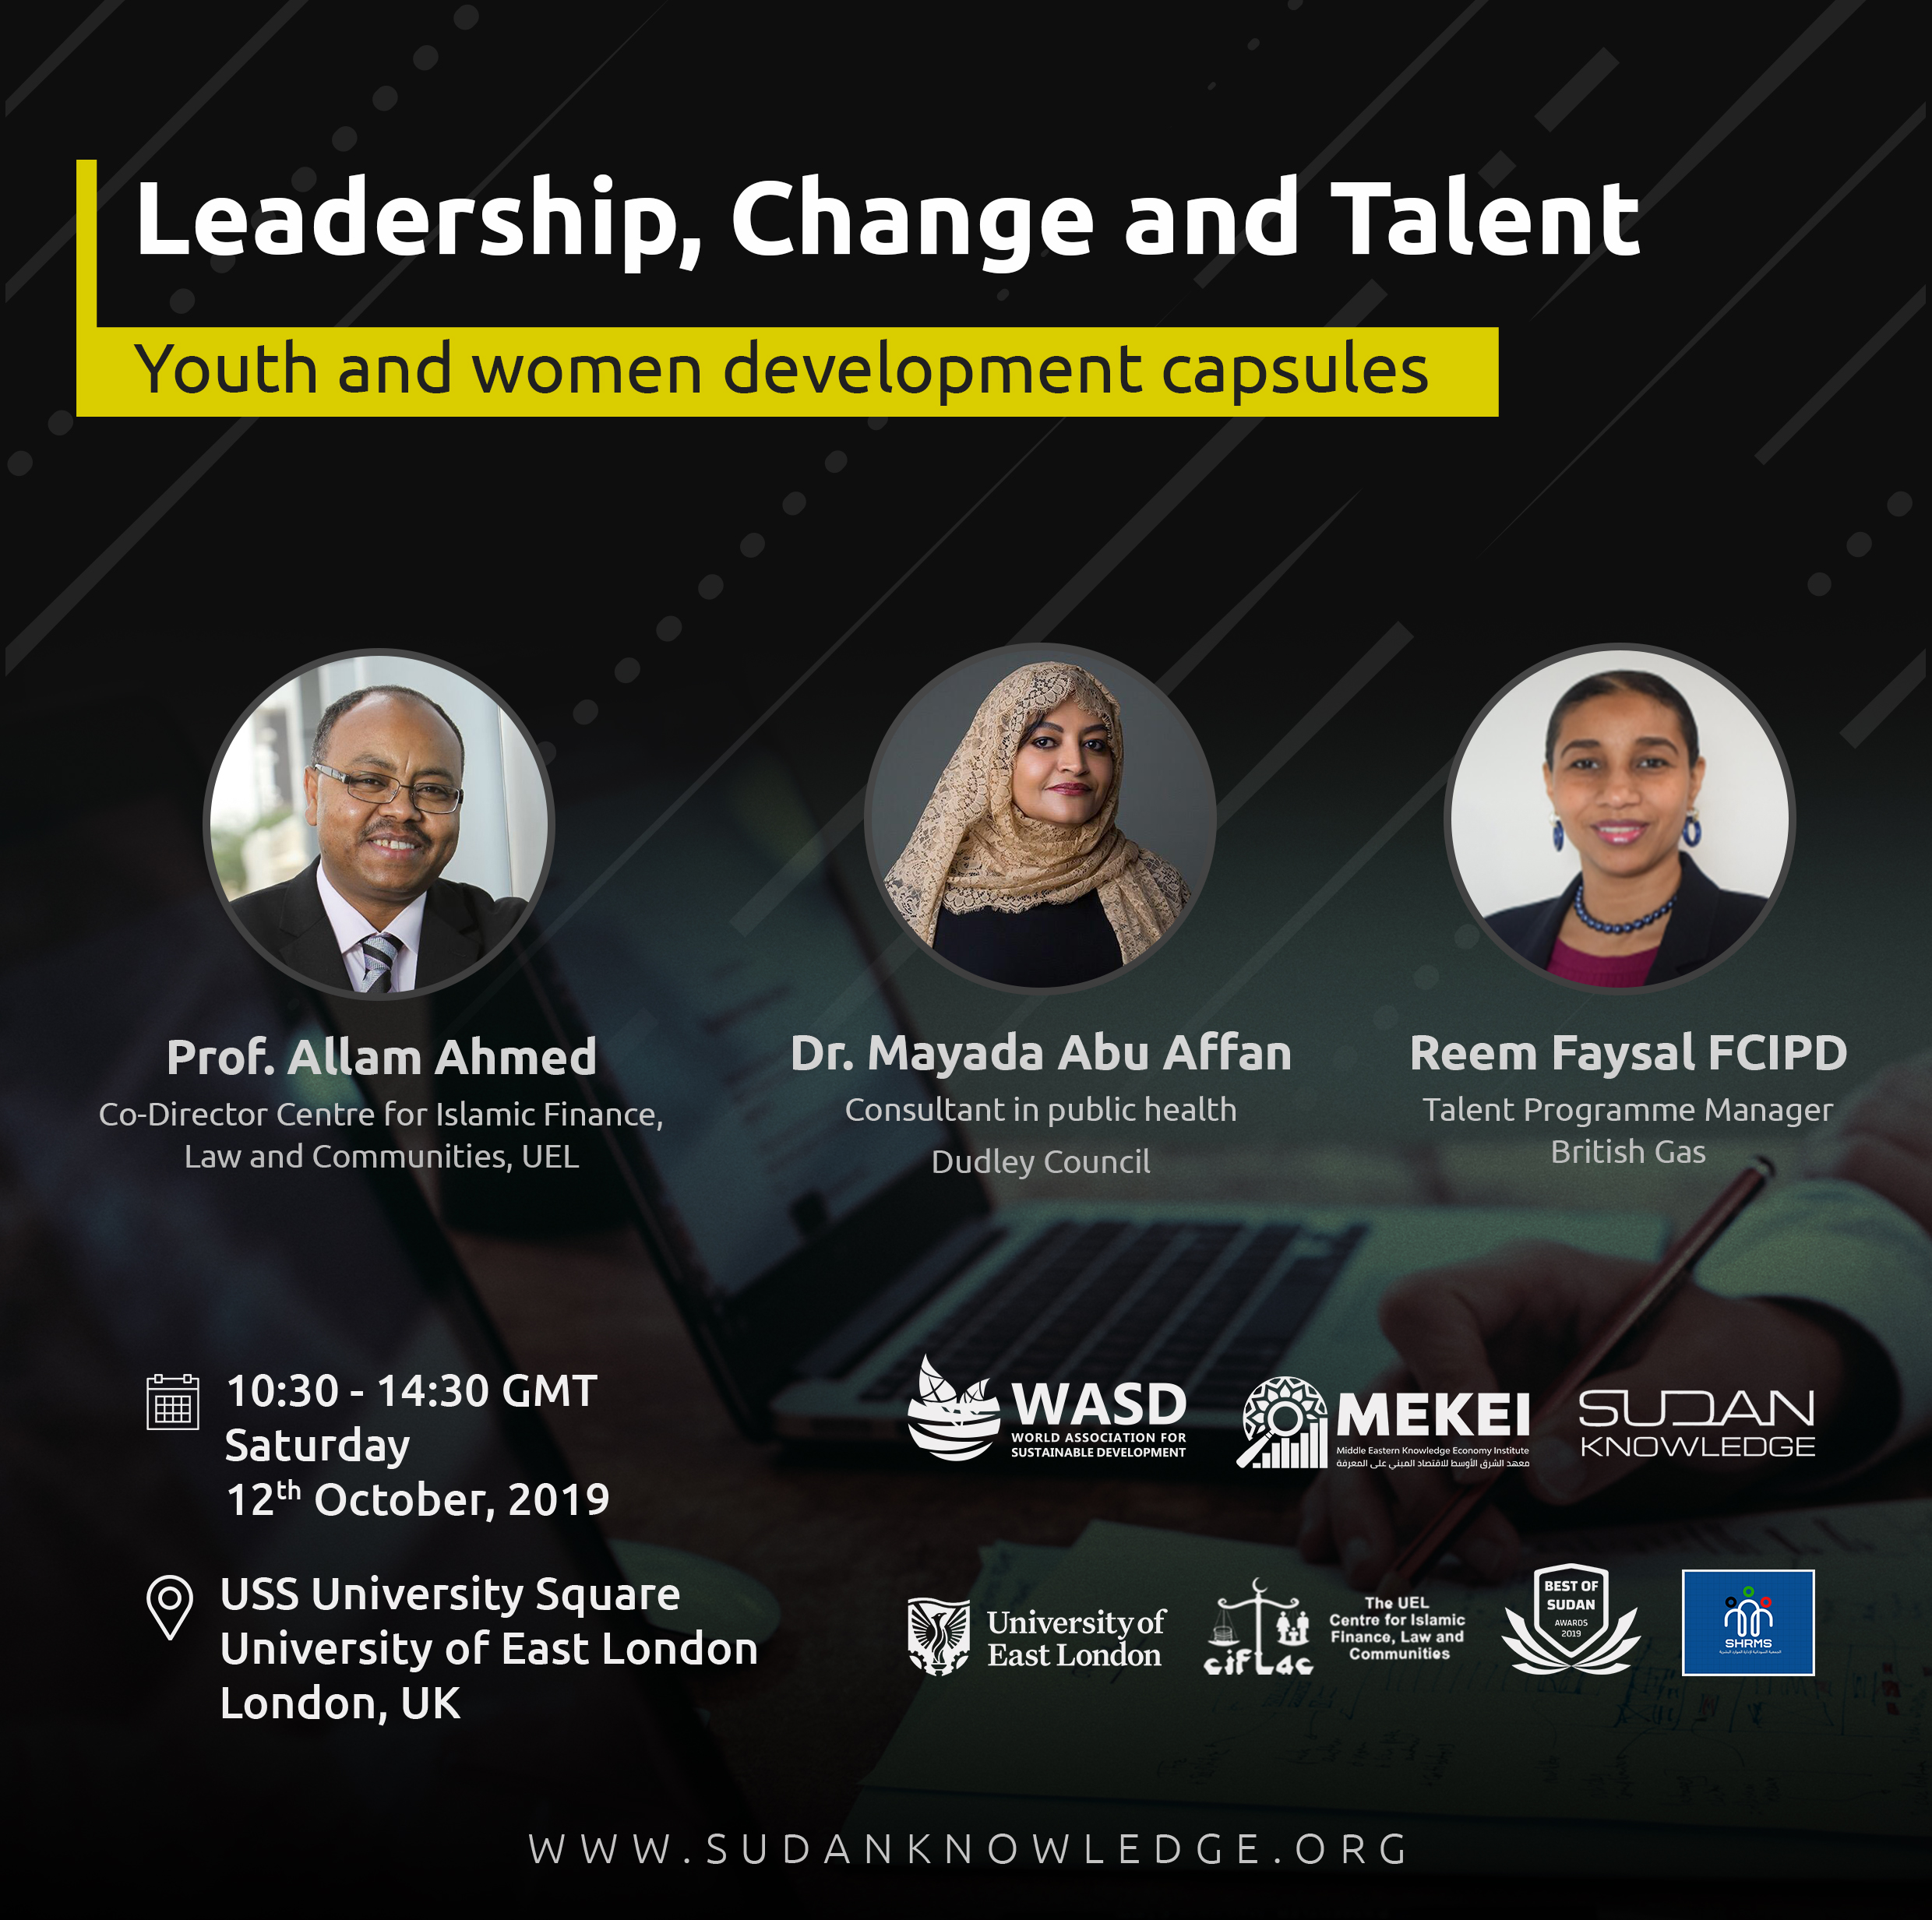 Leadership, Change and Talent